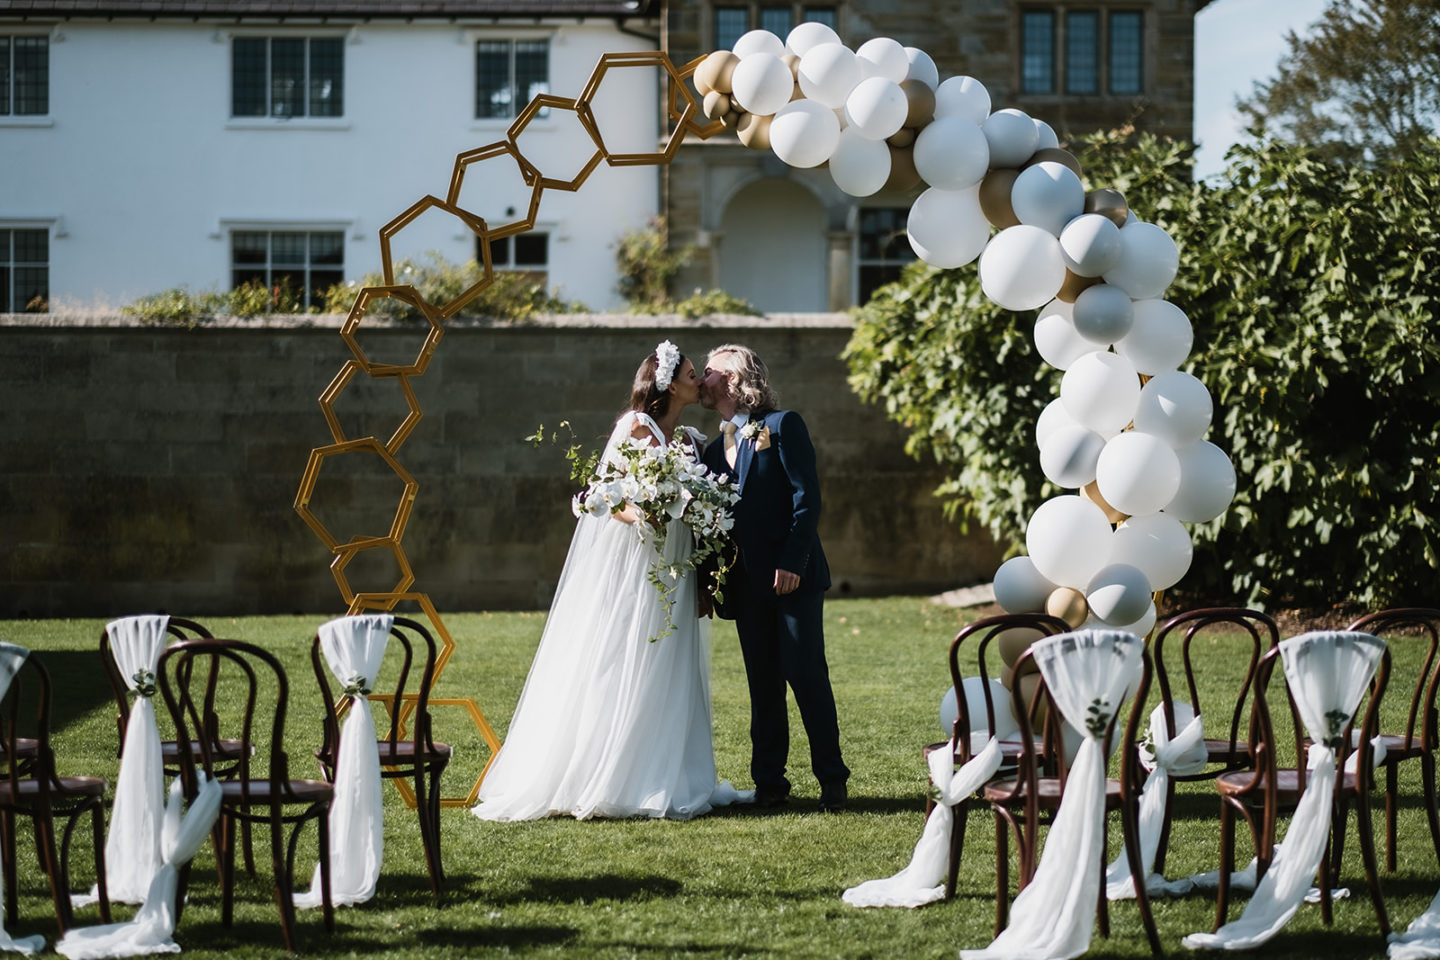 Intimate Wedding With Gold and Green Luxury Styling At Hendall Manor Barns, Sussex